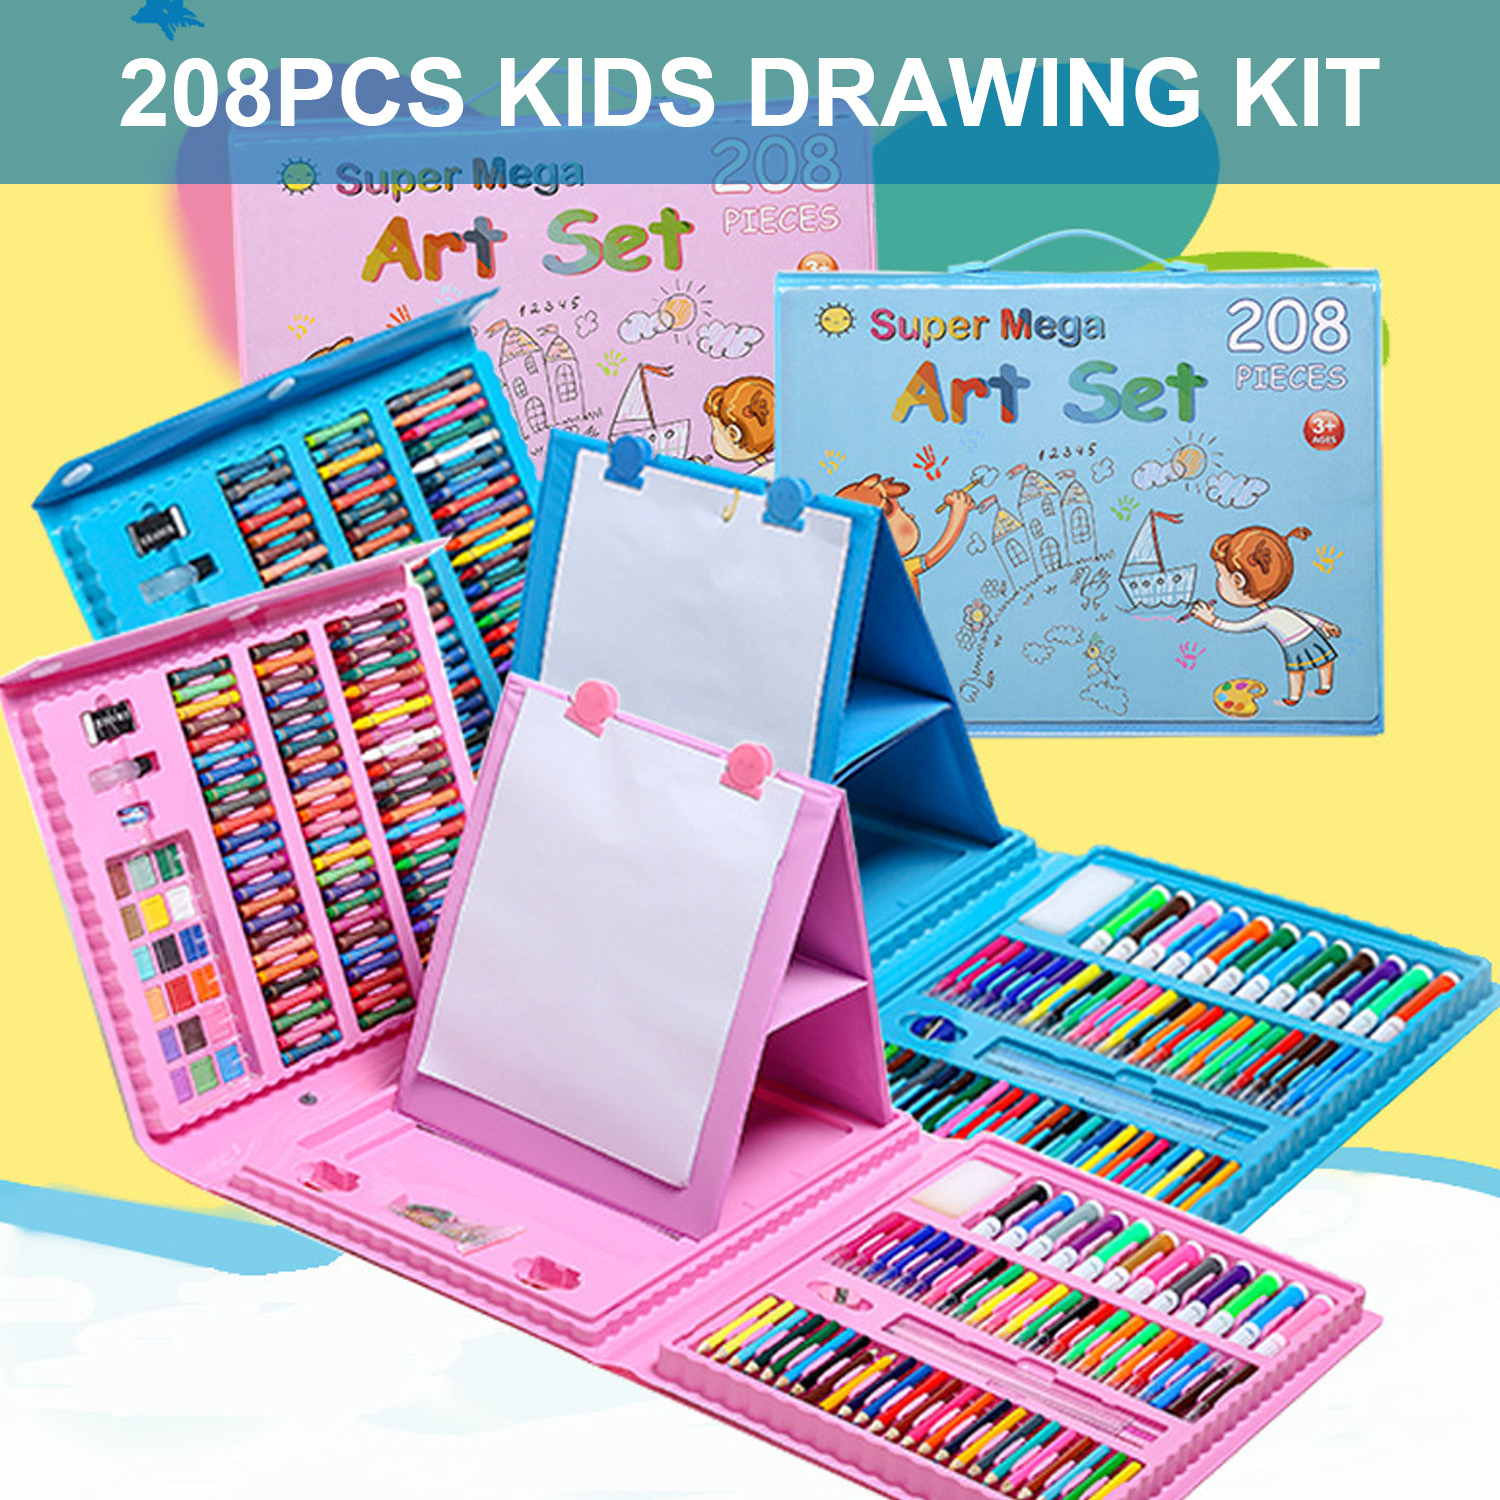 208PCS Kids Children Painting Drawing Tools Set With Colored Pencils Marker Pens Crayons For Home School Kindergarten Supplies